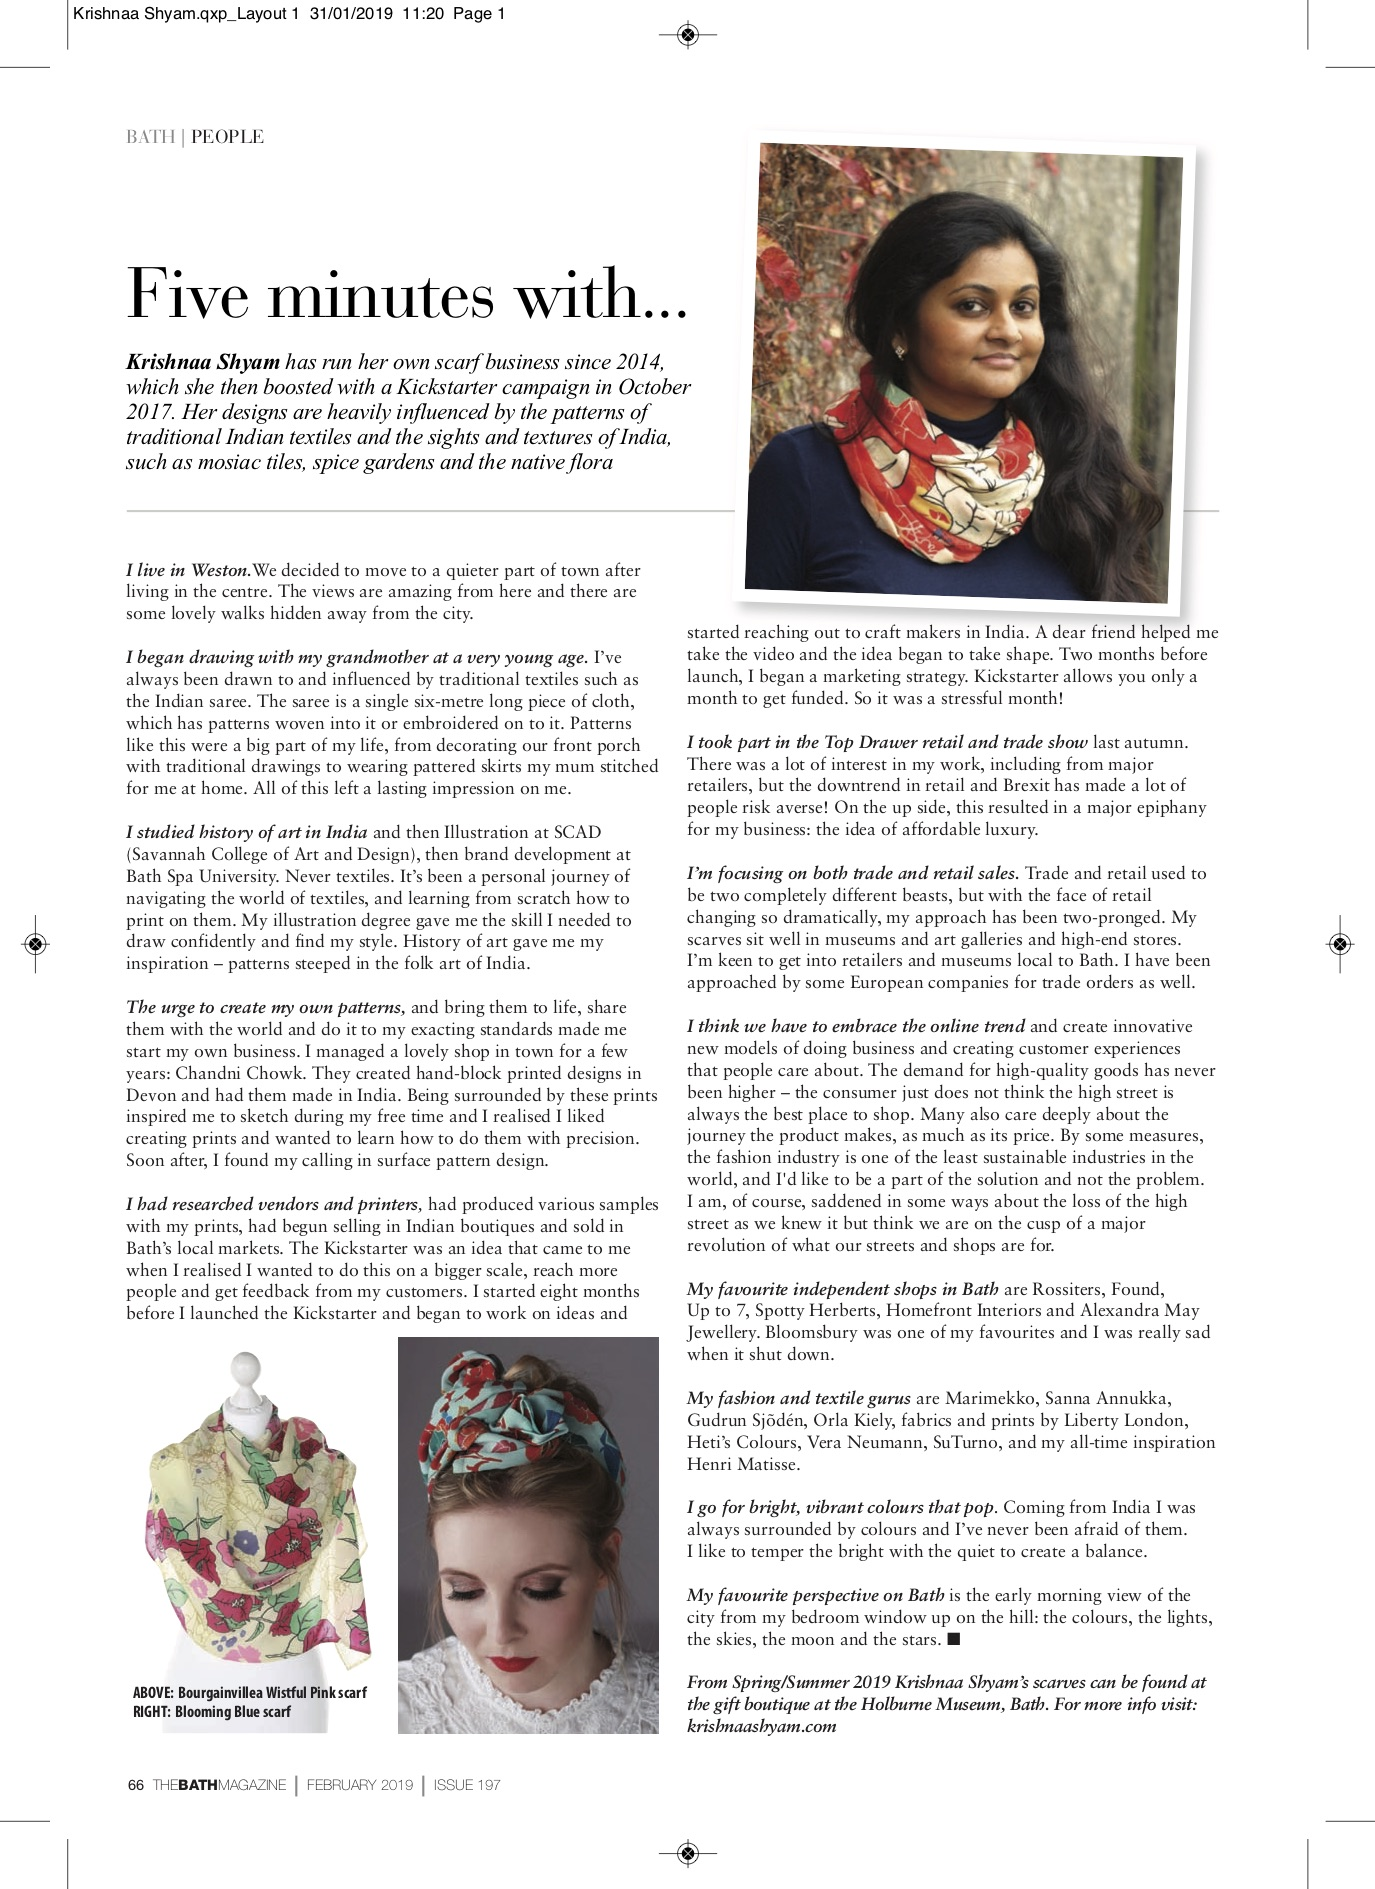 Krishnaa Shyam_5 minutes with_Bath Magazine Feb 2109.jpg